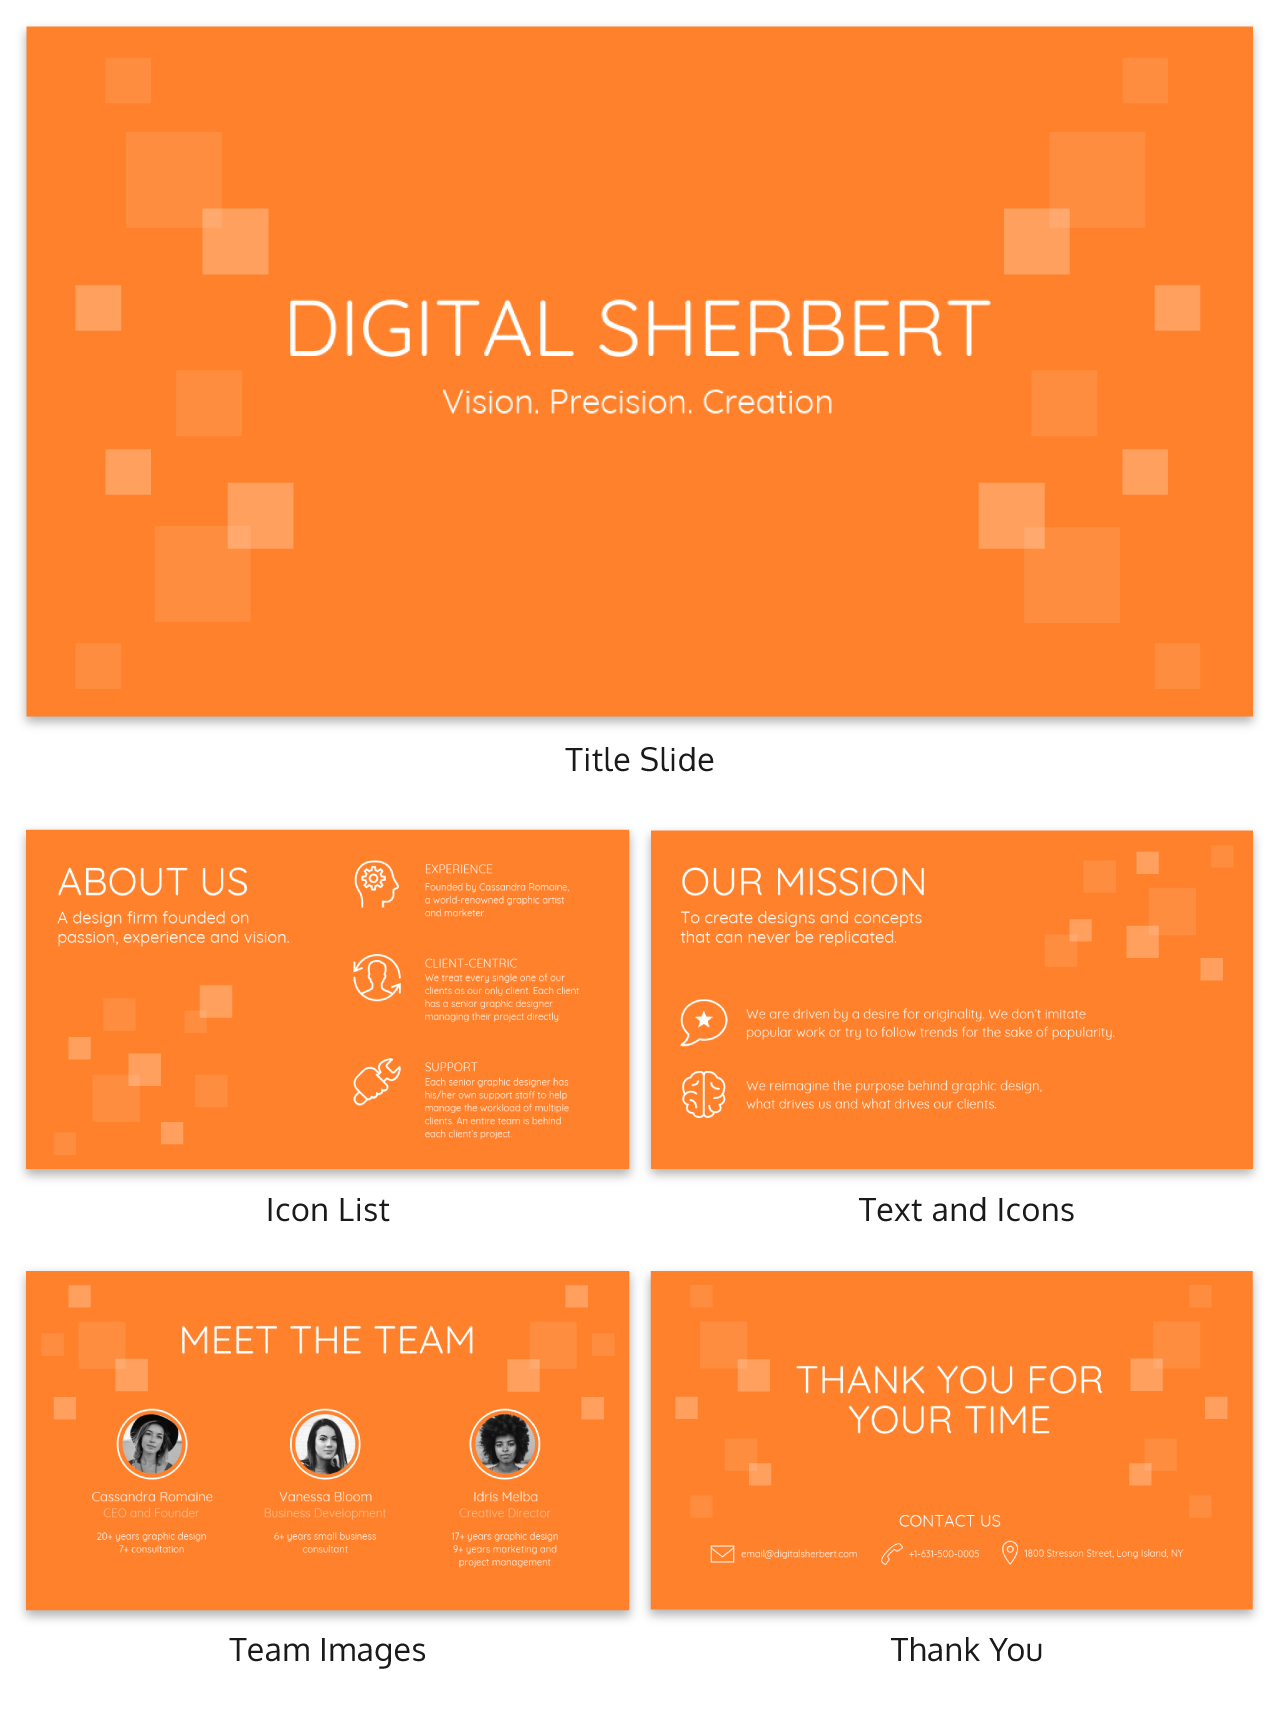 Sherbert Business Presentation Template